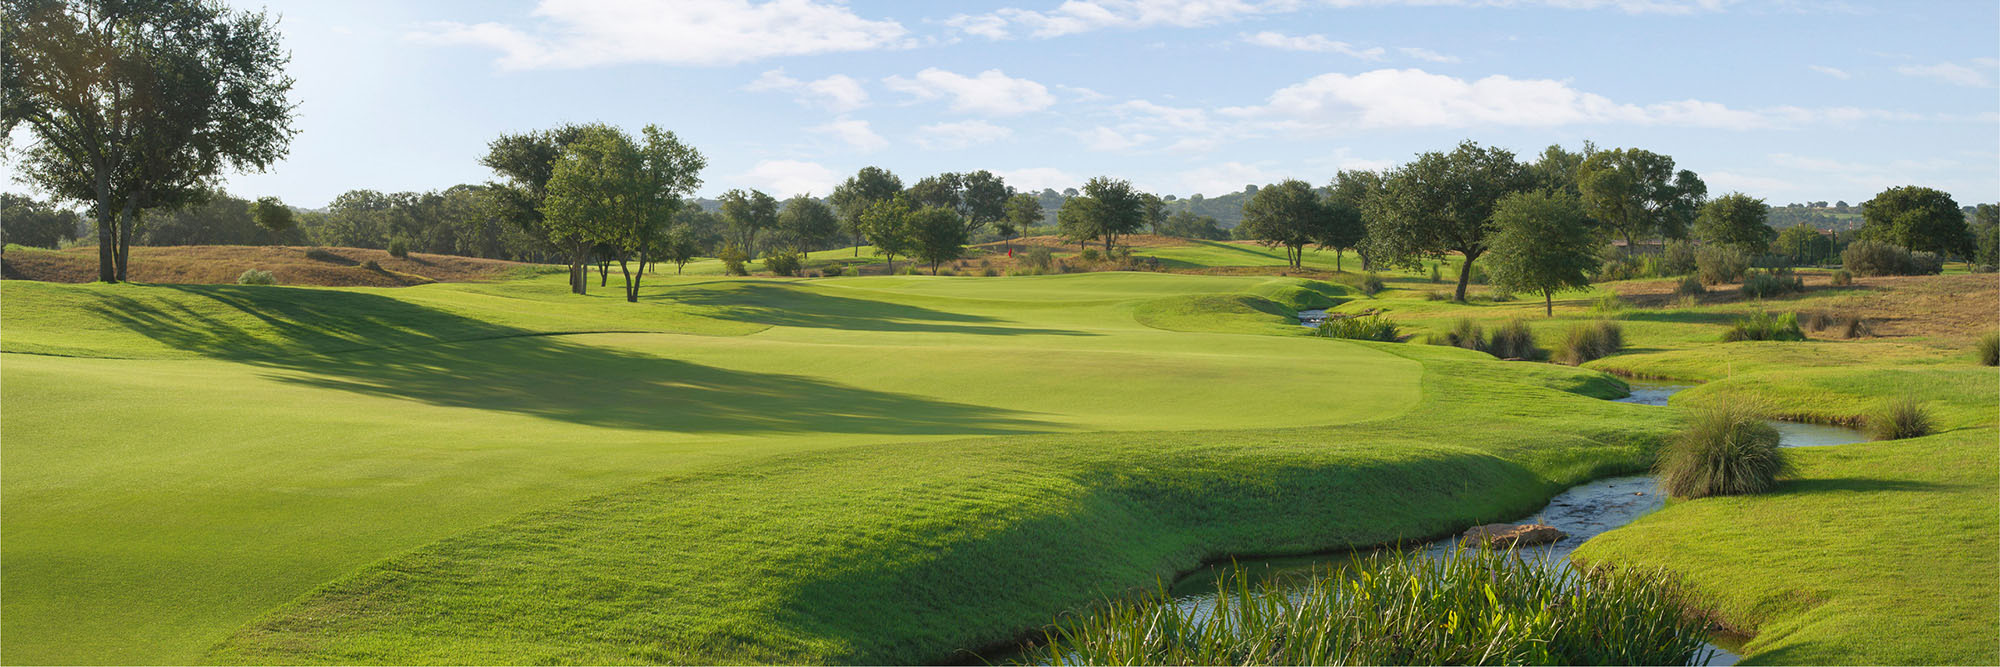 Golf Course Image - Escondido No. 6